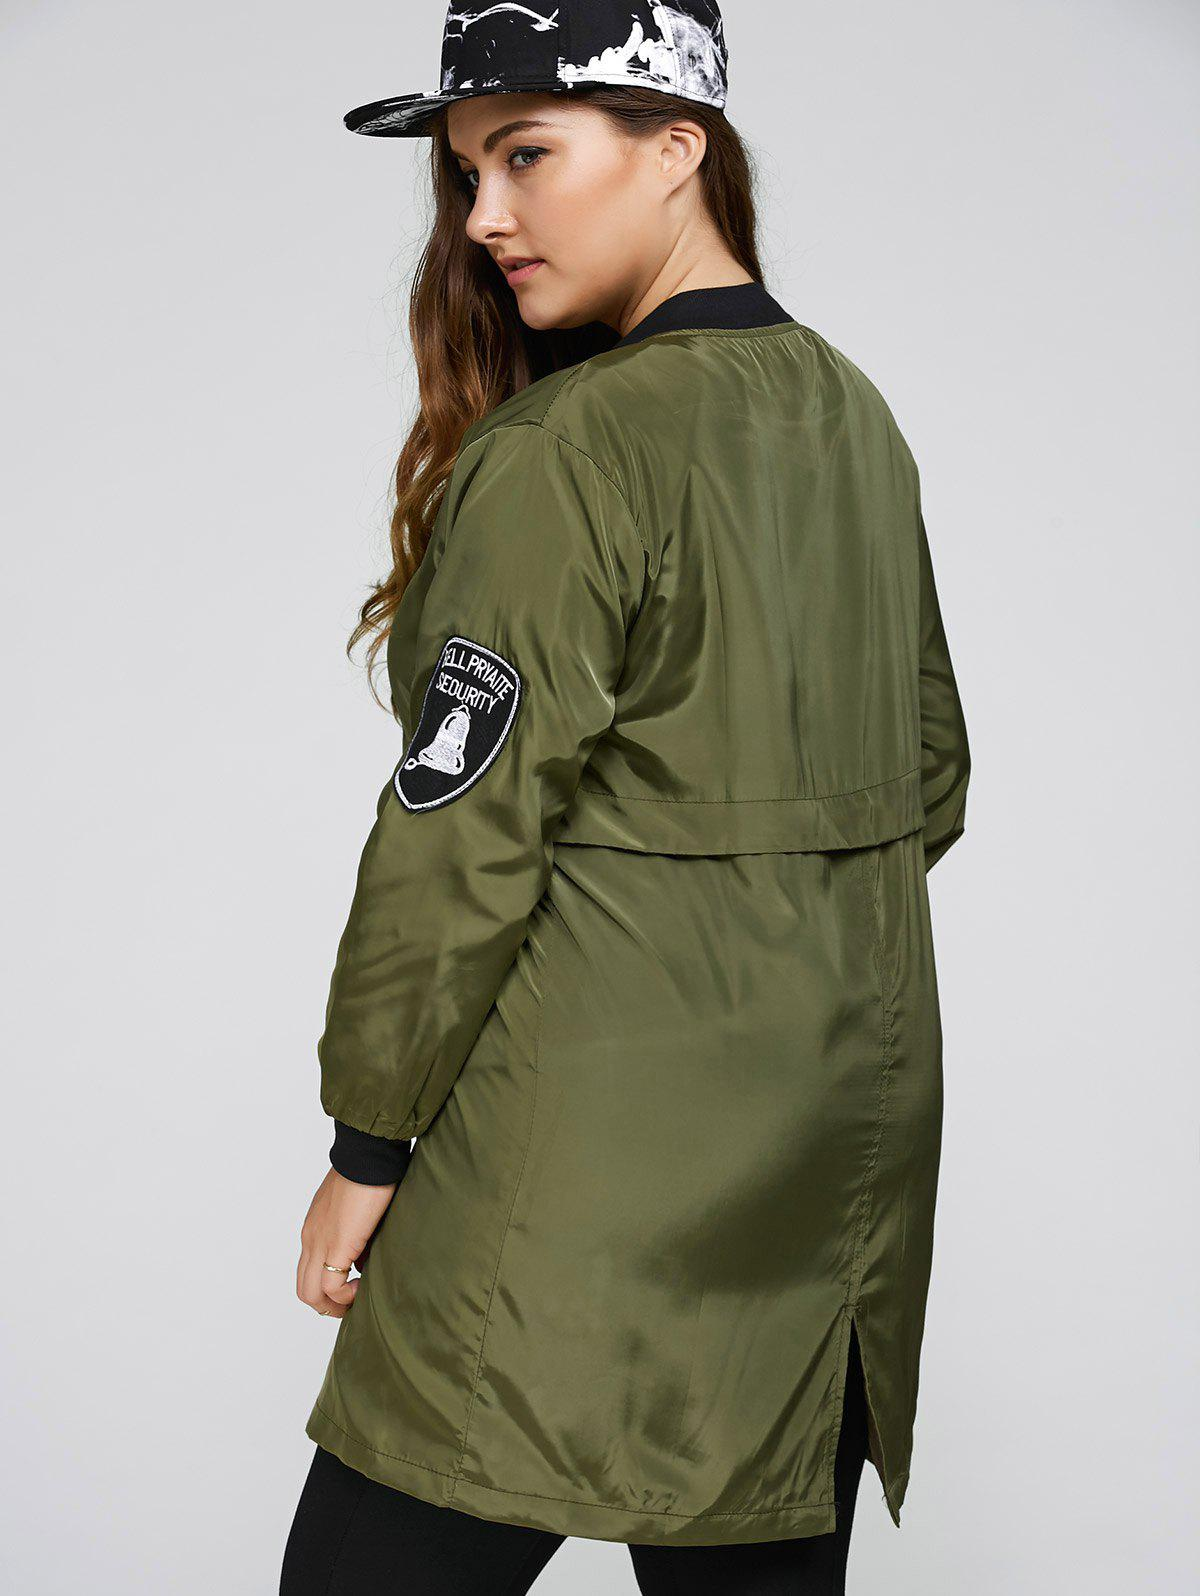 Plus Size Zip Up Long Bomber Jacket - ARMY GREEN XL